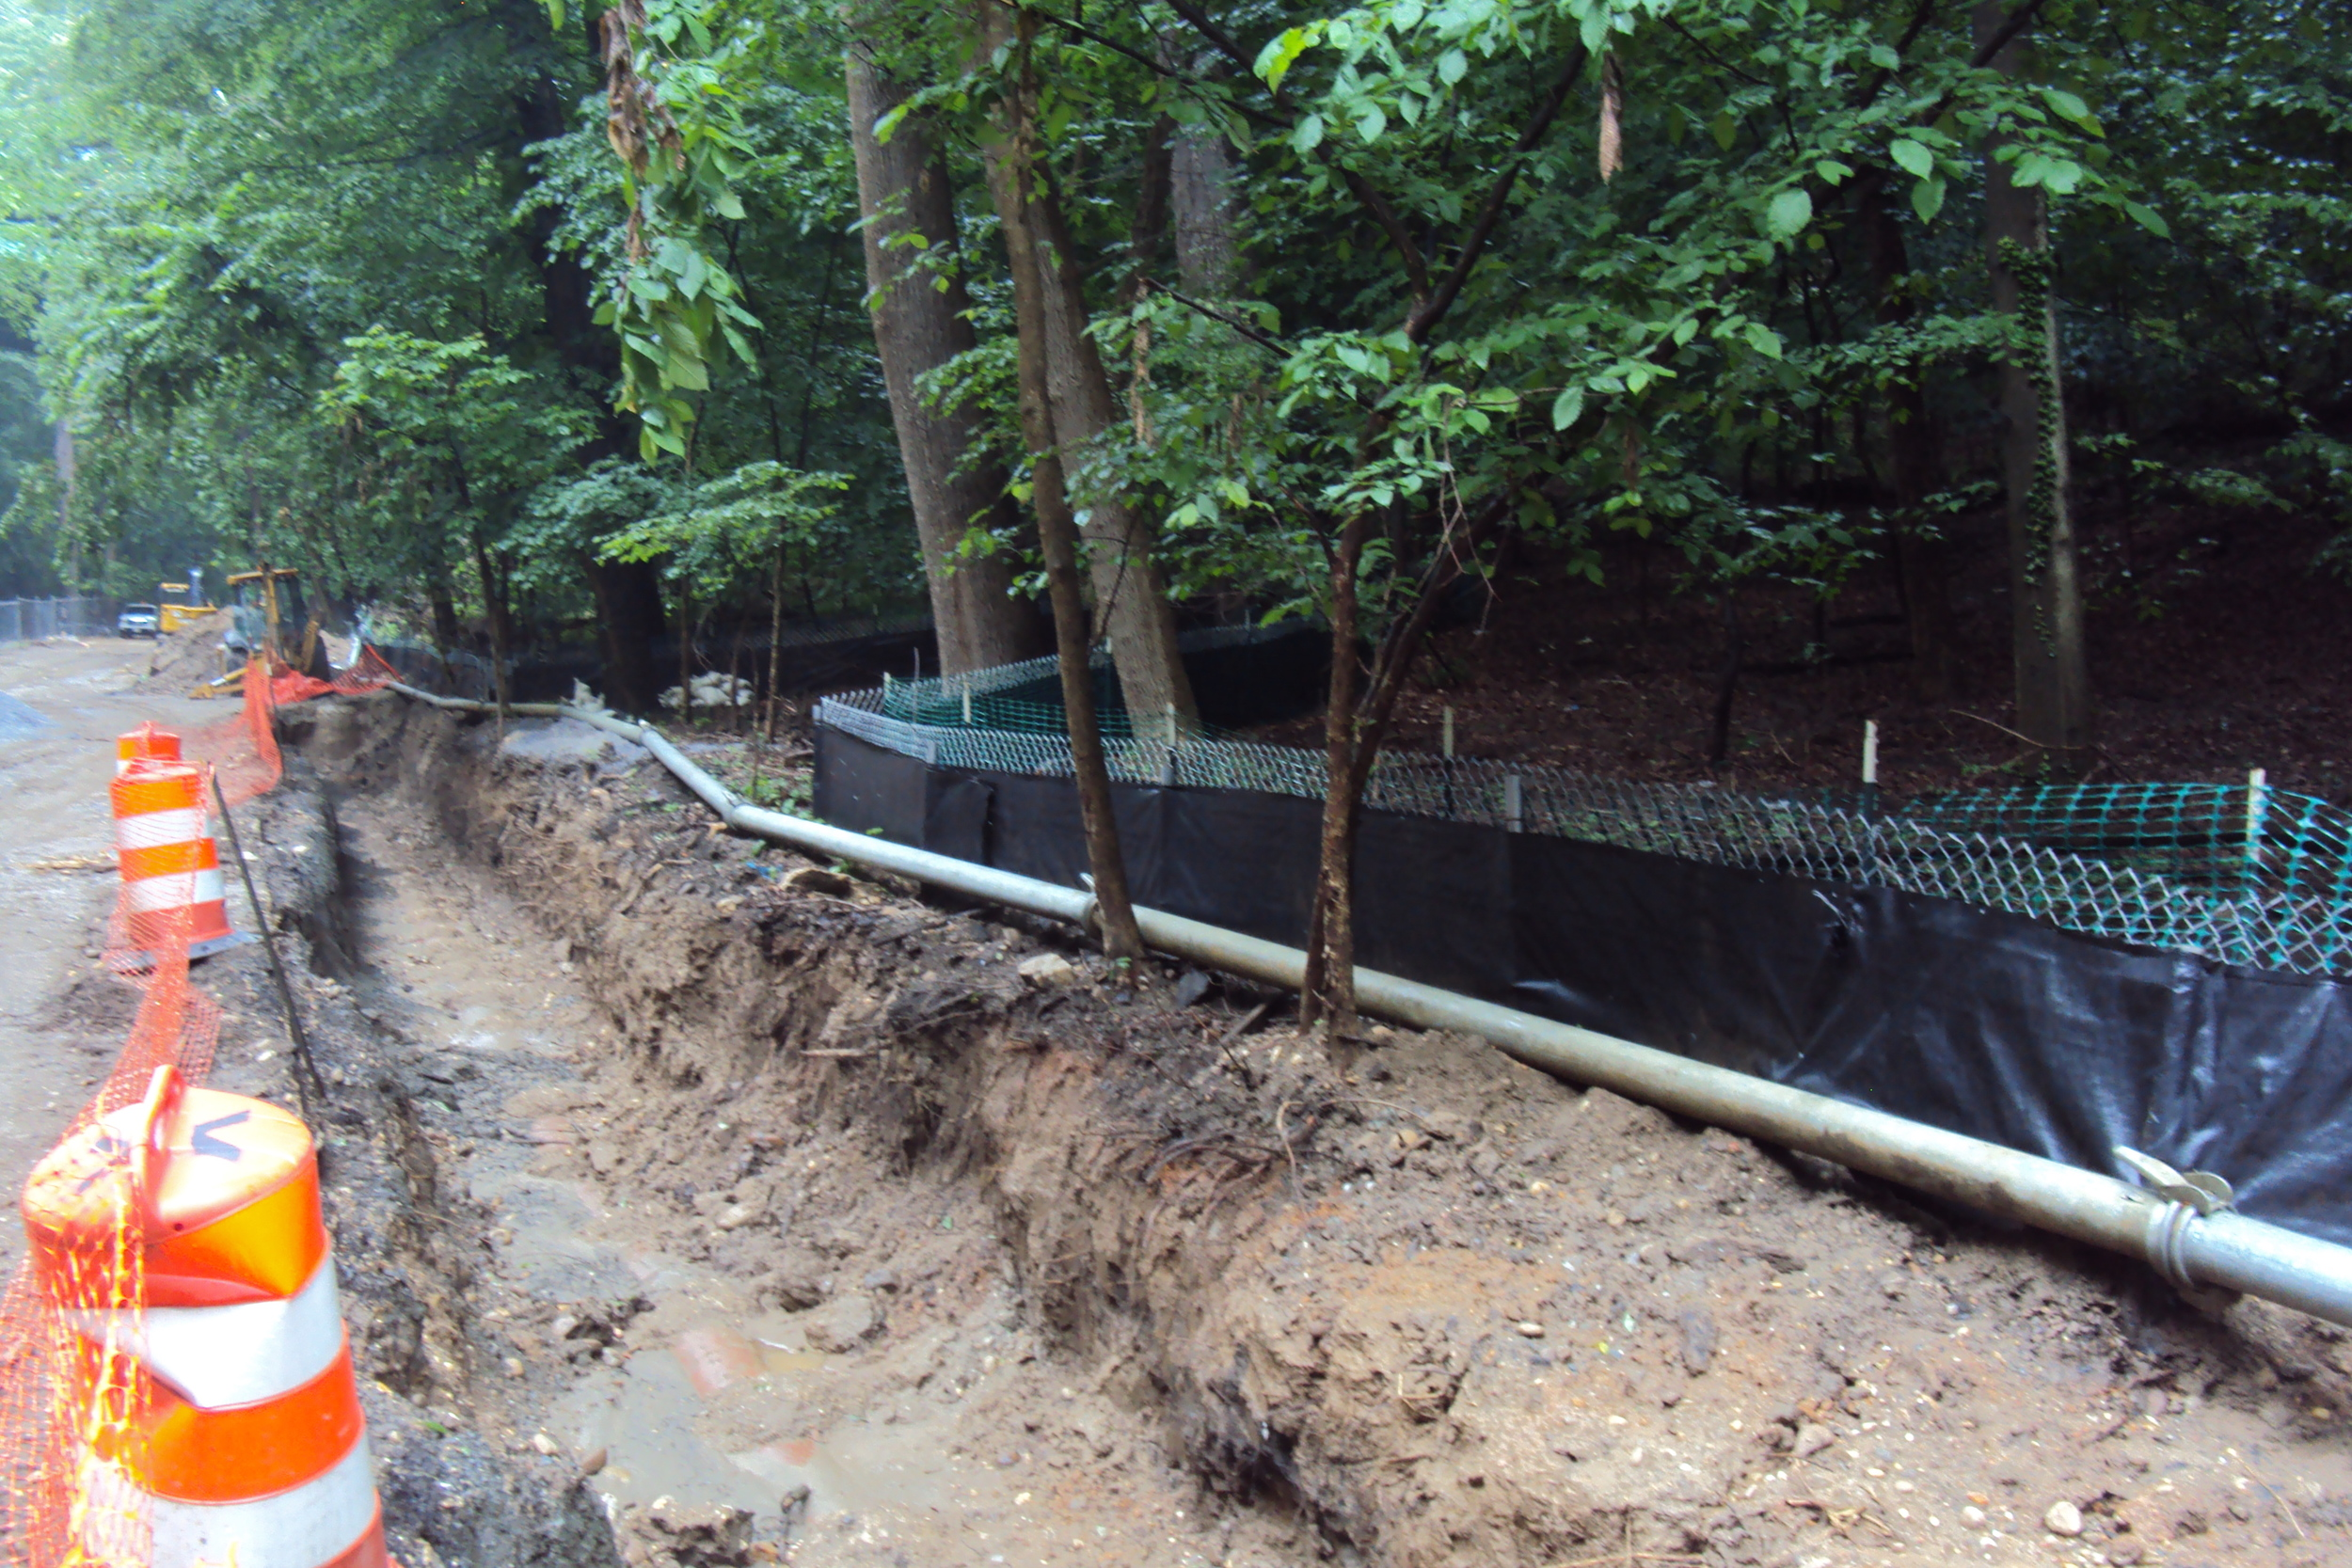 Bypass pipe and pump in place for sanitary sewer removal